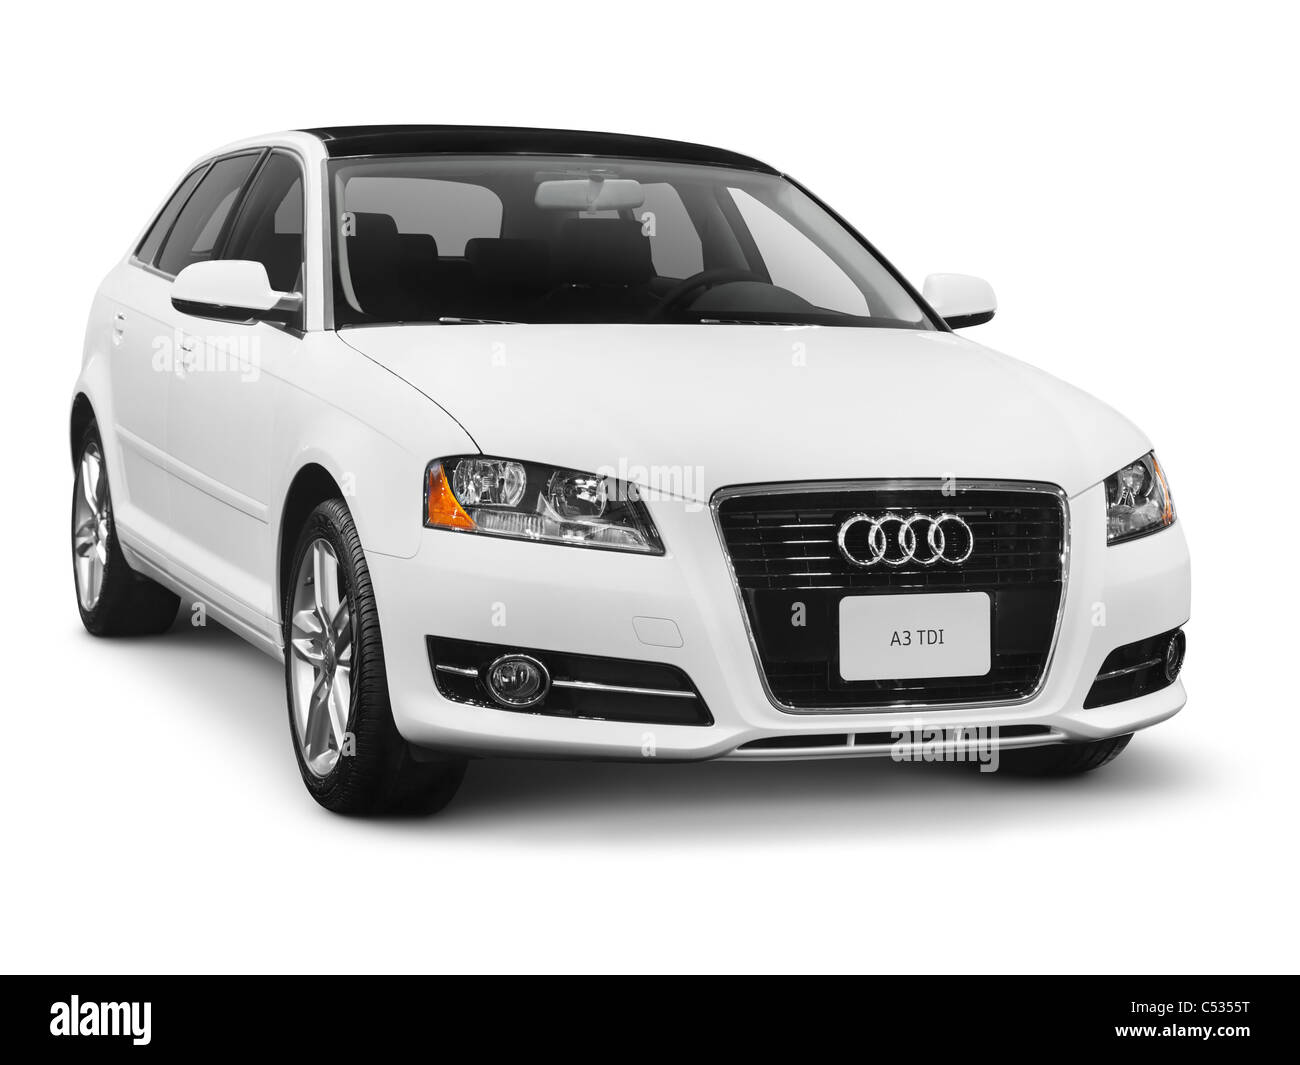 White 2011 Audi T3 TDI small family car. Isolated on white background with clipping path. - Stock Image